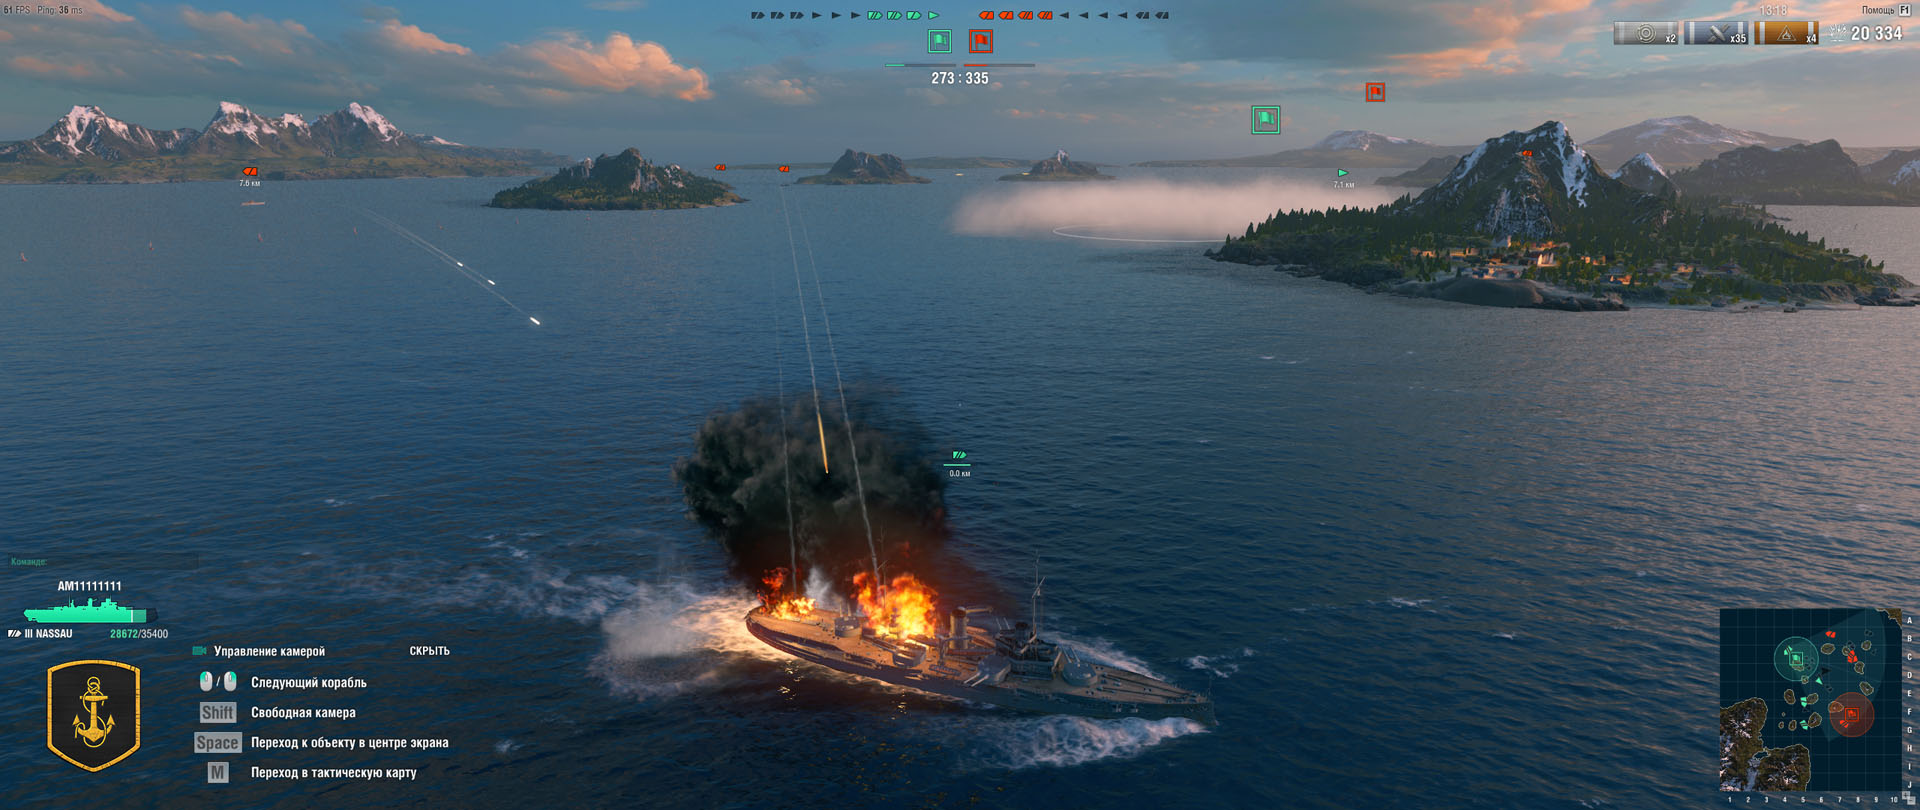 World of Warships Screenshot 2018.06.13 - 16.02.26.78.jpg - World of Warships